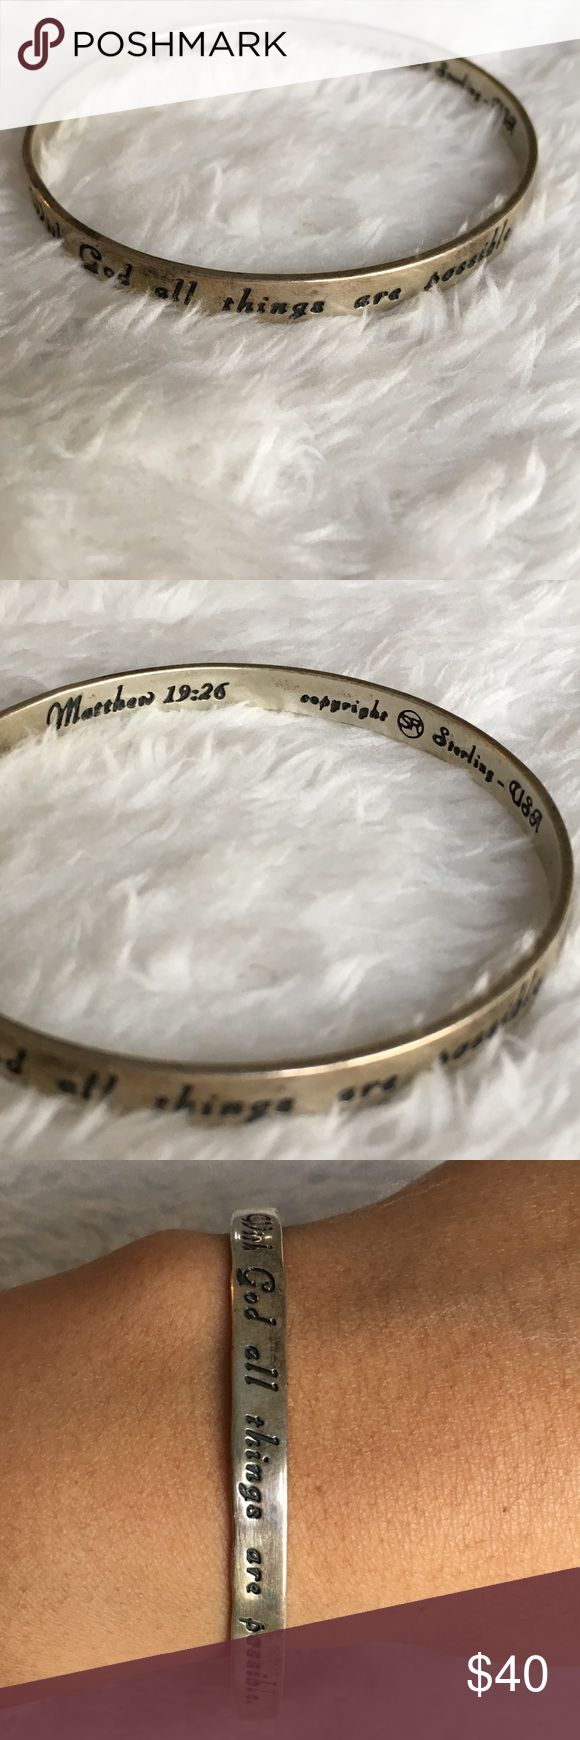 "Sterling silver religious bracelet Matthew 19:26 Bracelet outside says, ""with God all things are possible."" Inside is marked ""Matthew 19:26 copyright sterling USA."" Has some tarnish. Please refer to pictures for sizing and condition. A1 Jewelry Bracelets"